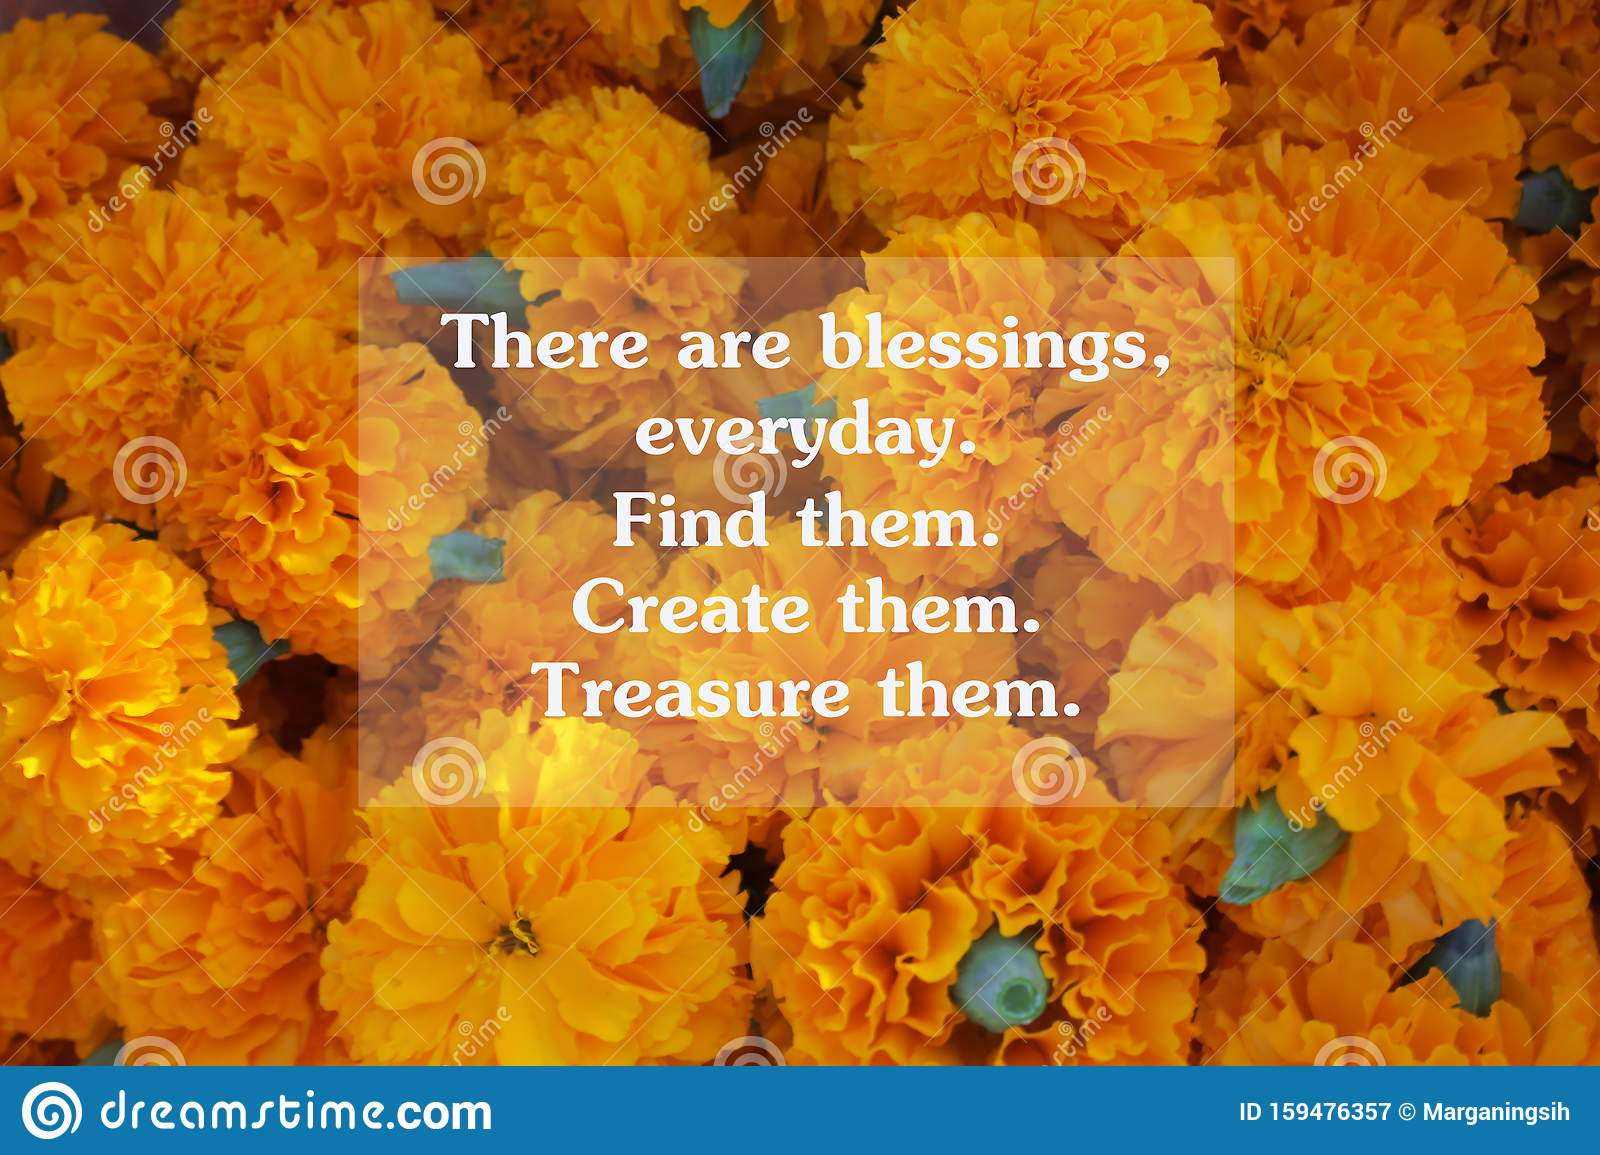 Blessings Quotes Photos Free Royalty Free Stock Photos From Dreamstime